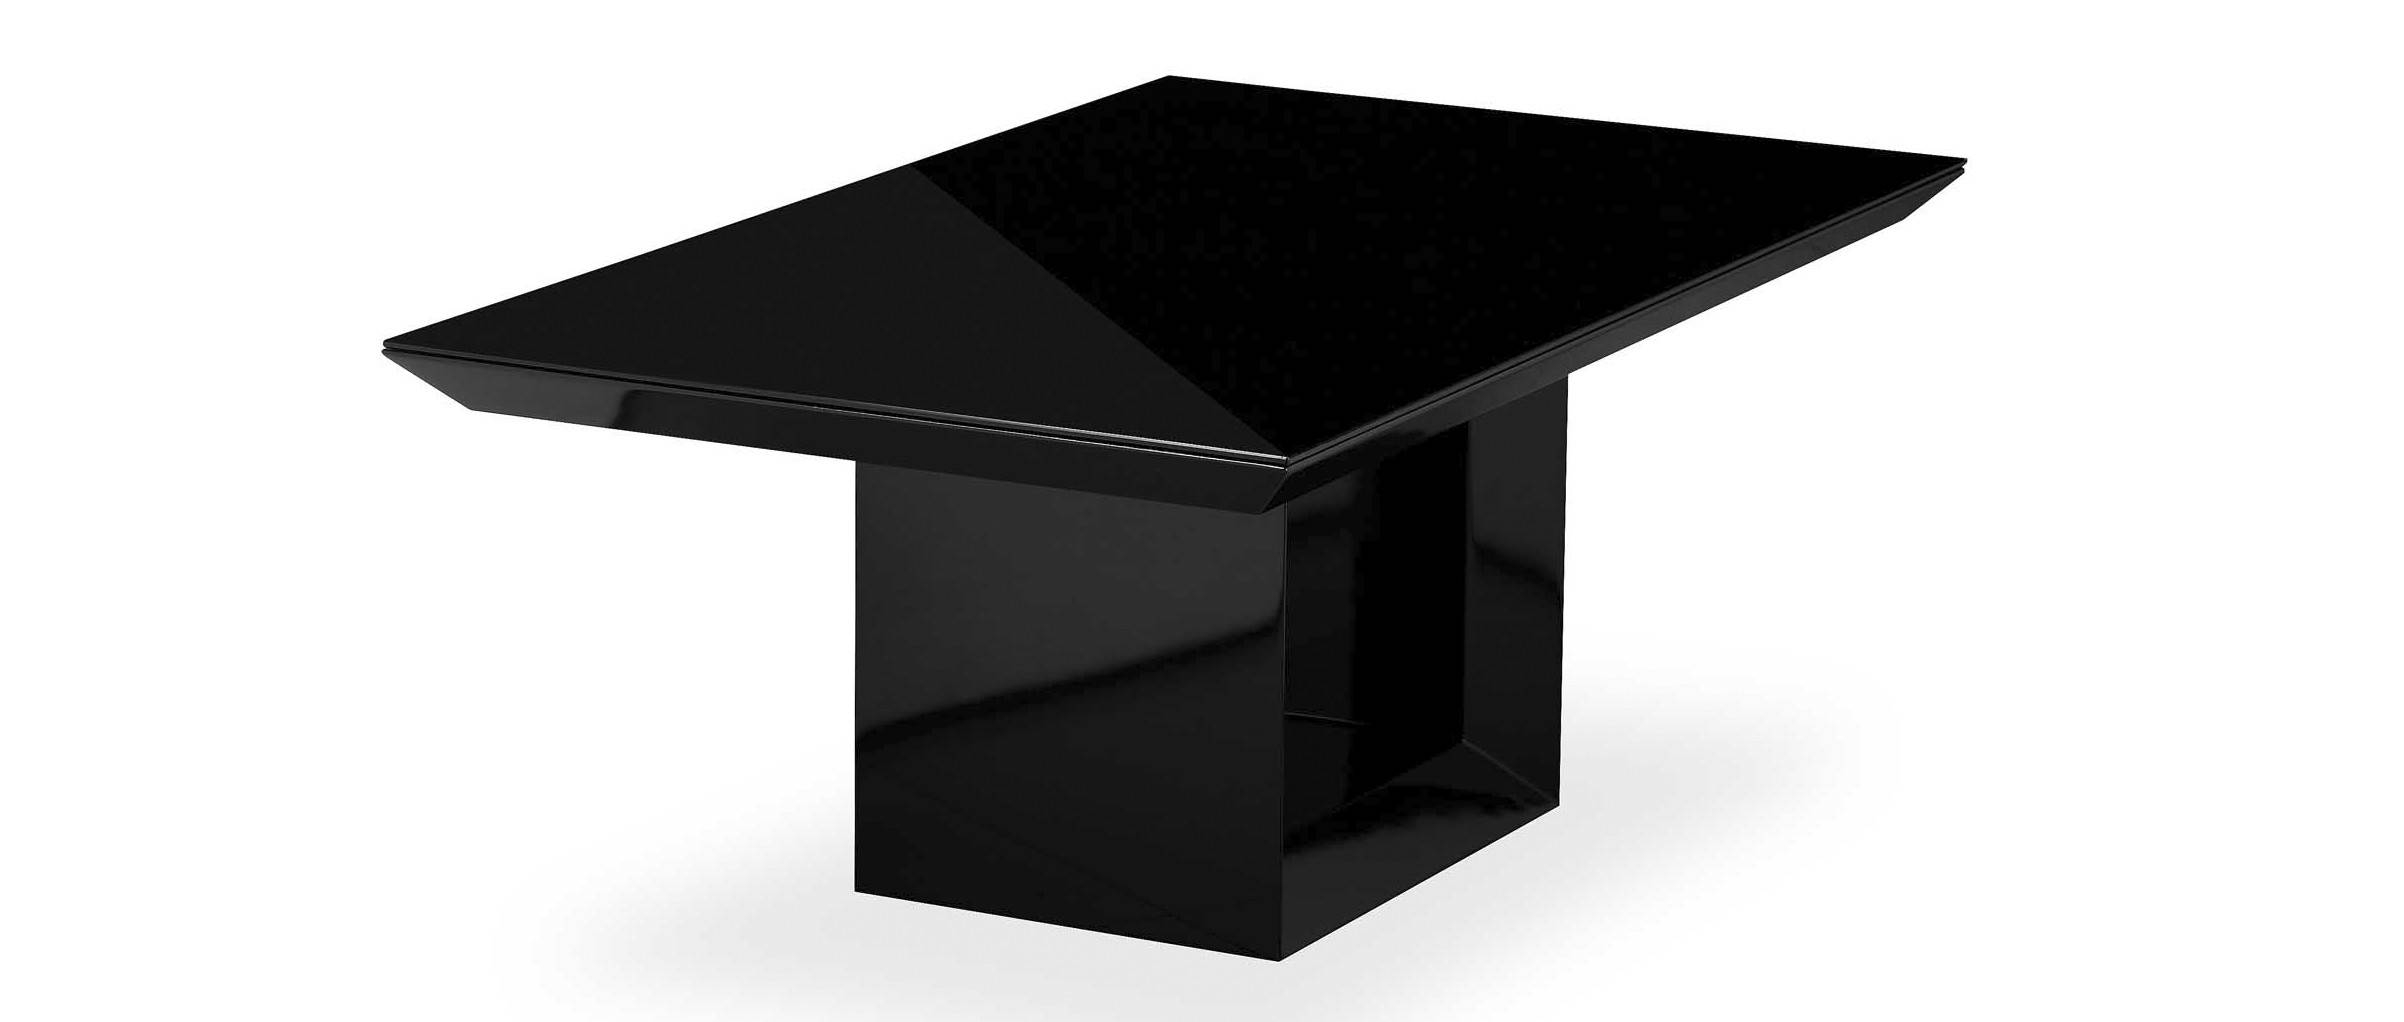 Soho - Coffee Table Top - Black High Gloss throughout Soho Coffee Tables (Image 19 of 30)